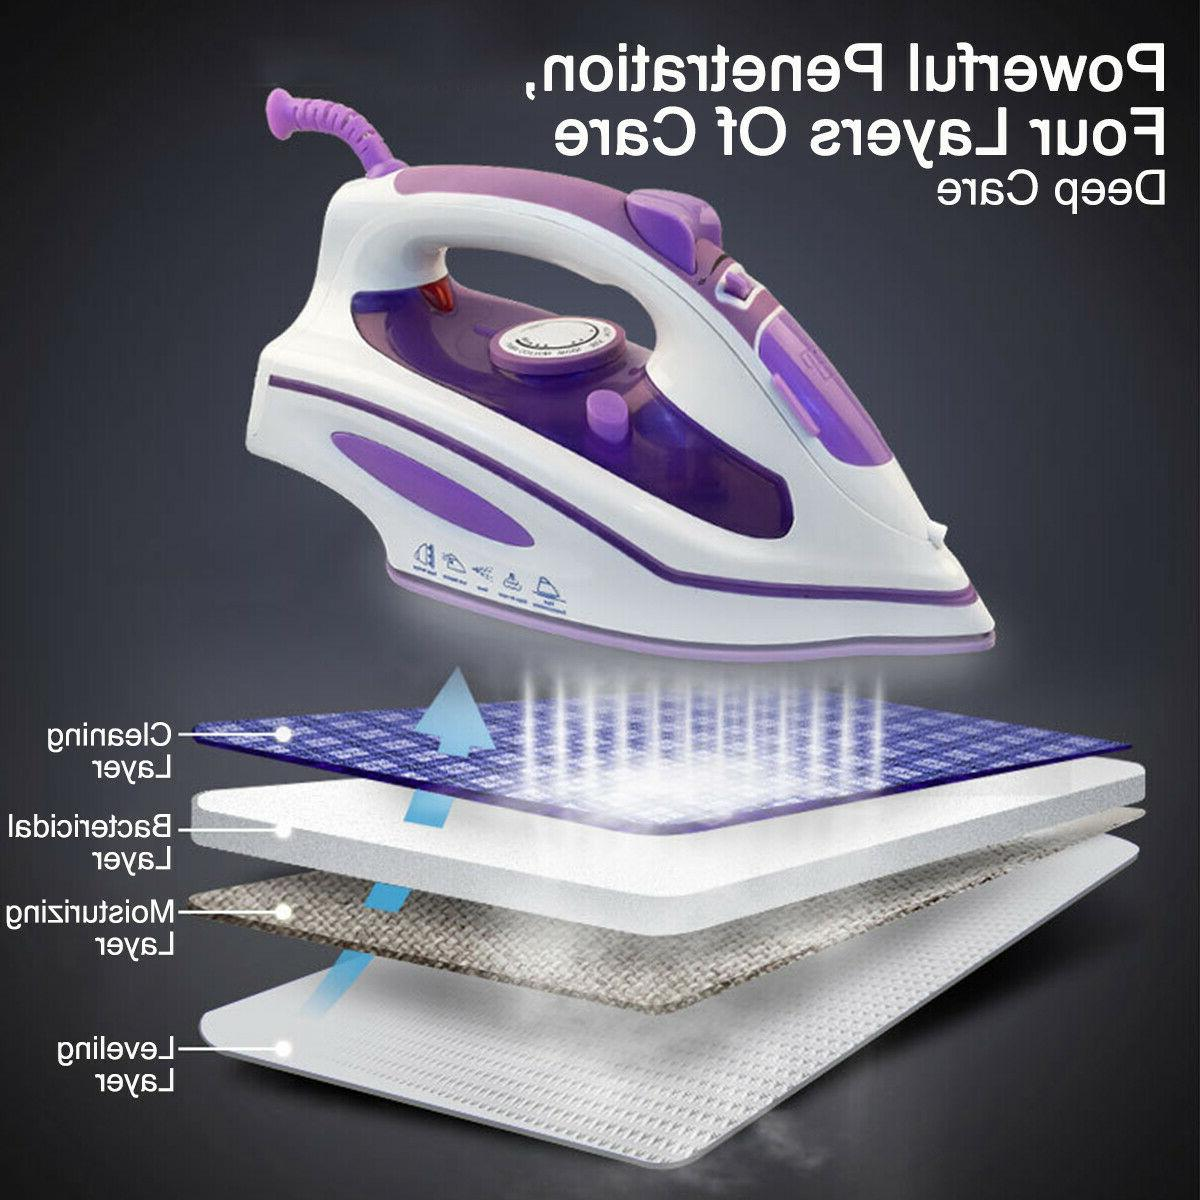 1200W Steam Iron Portable Steamer Clothes Handheld Fabric Laundry Home